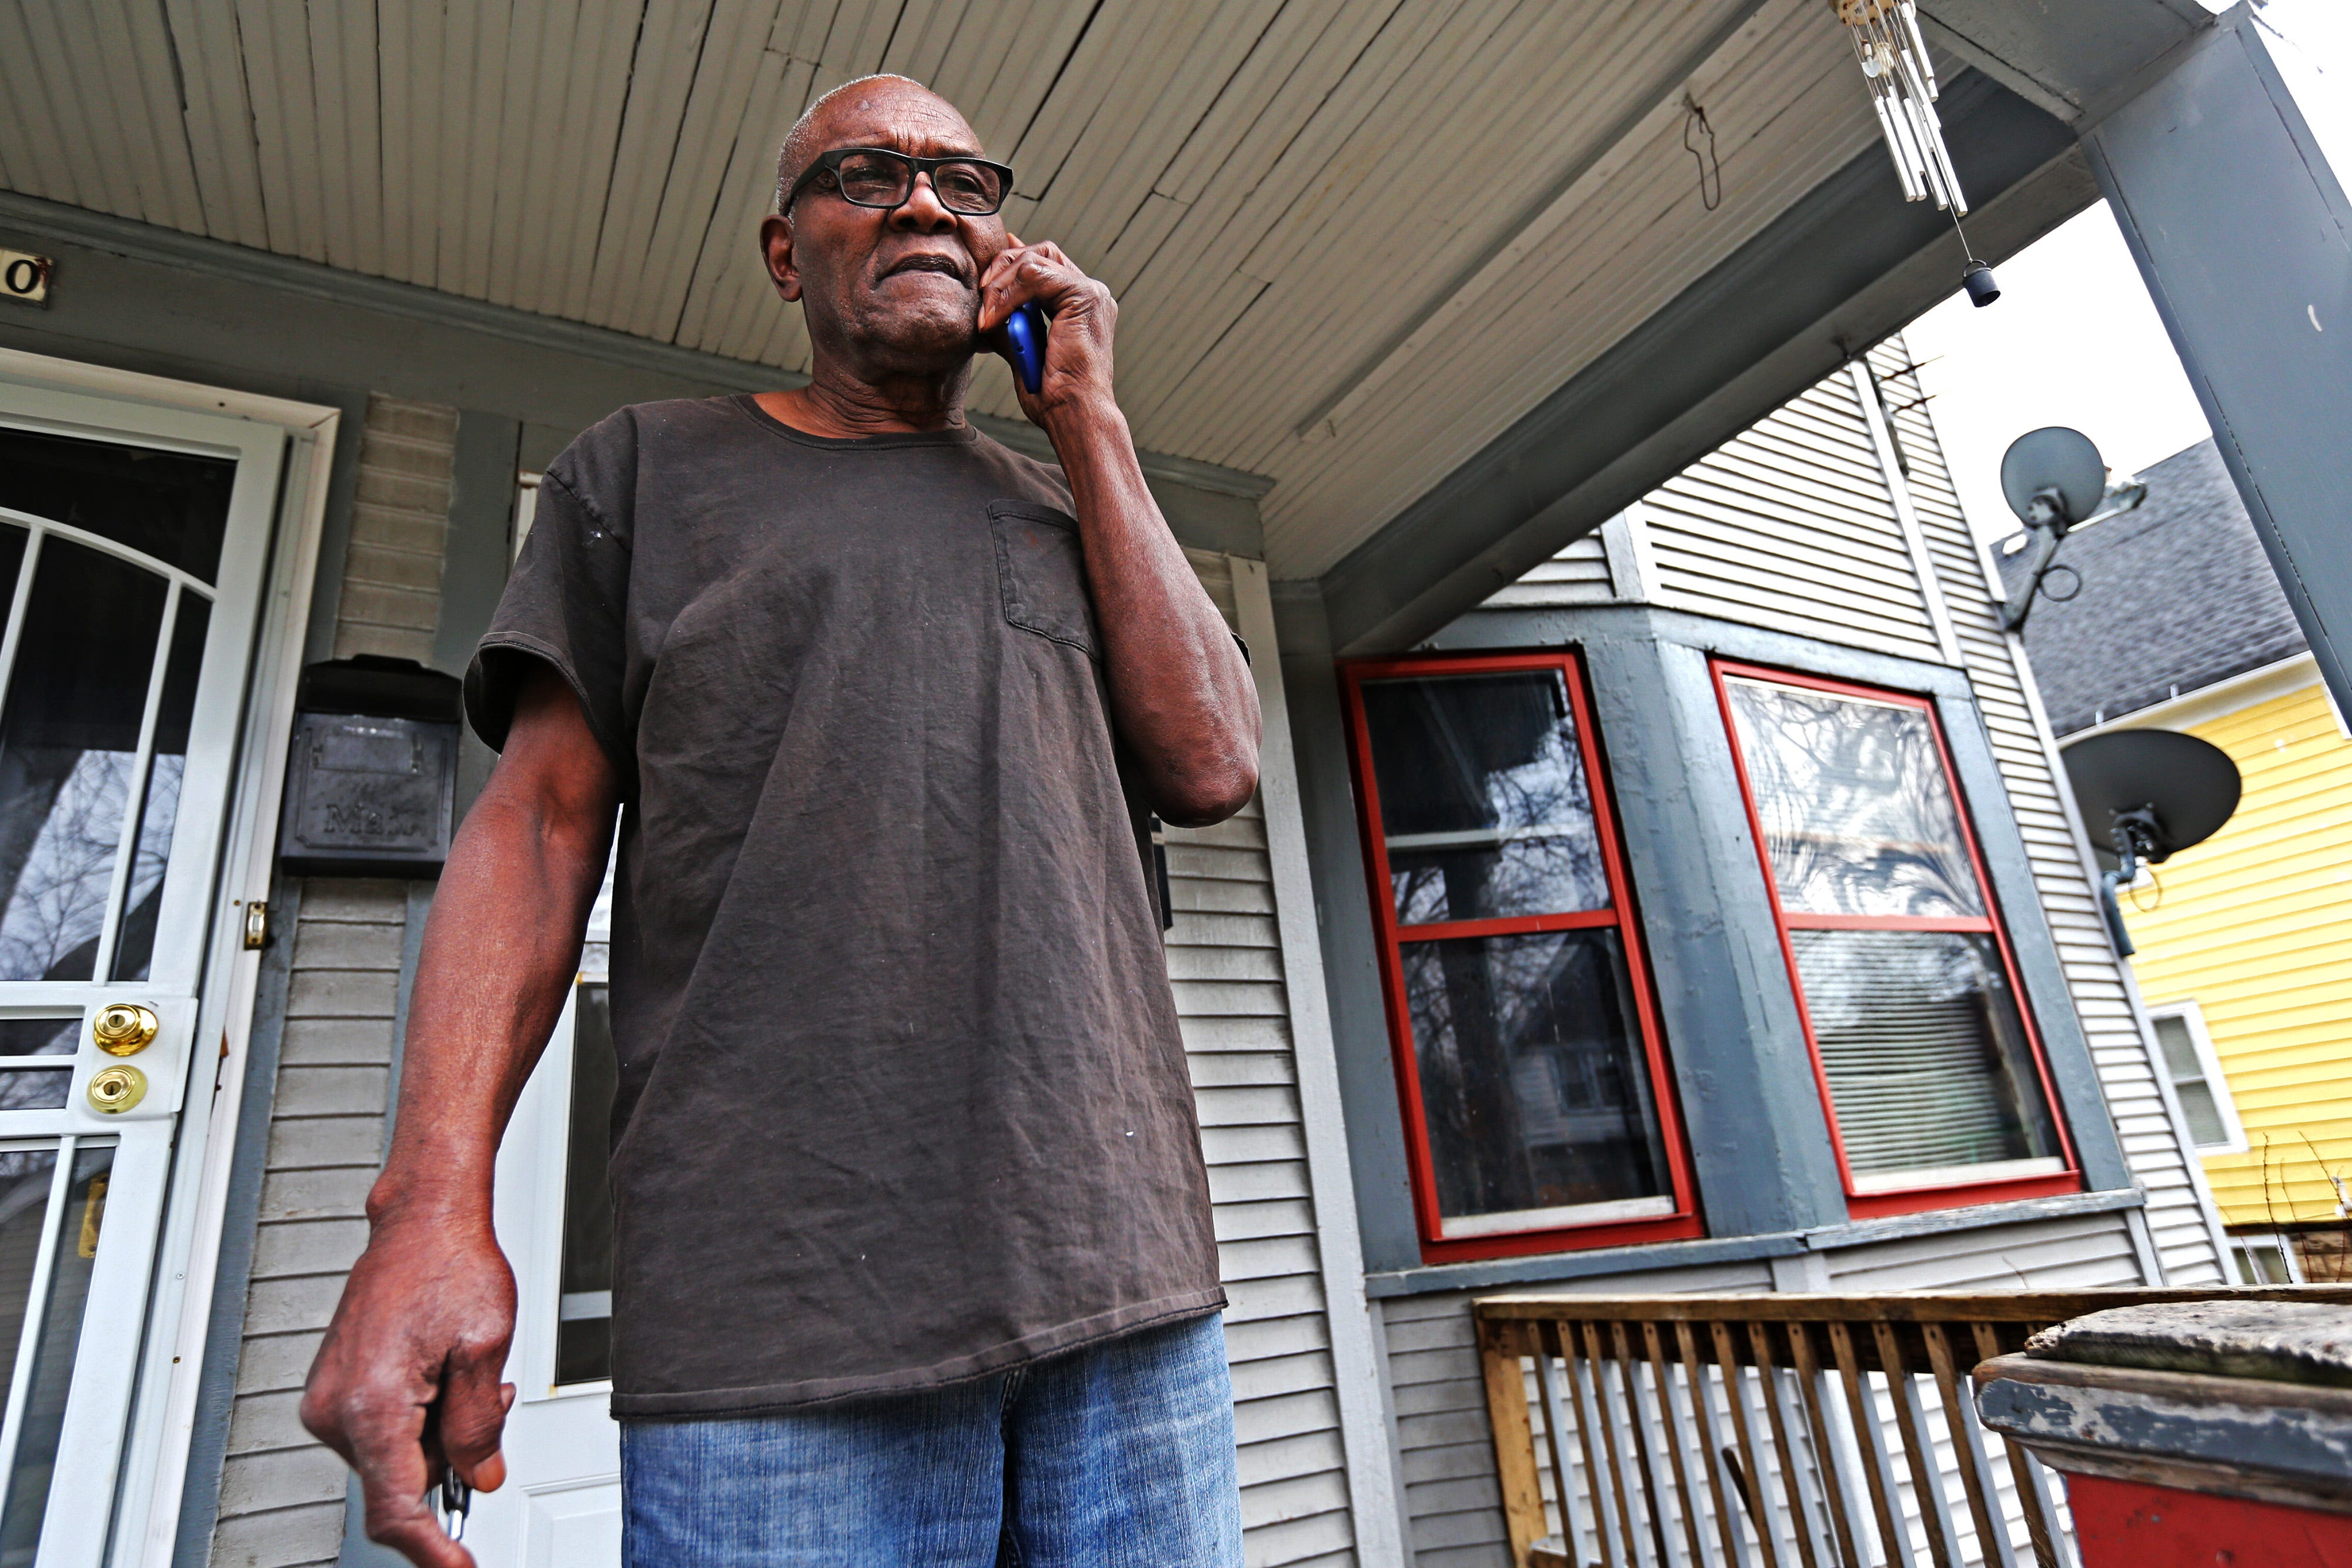 Sylvester Norwood, 78, has been renting this unit for several years on North Buffum Street. A California company bought it last year. The company is fixing up properties that are vacant, but is doing little for places like Norwood's that are occupied.